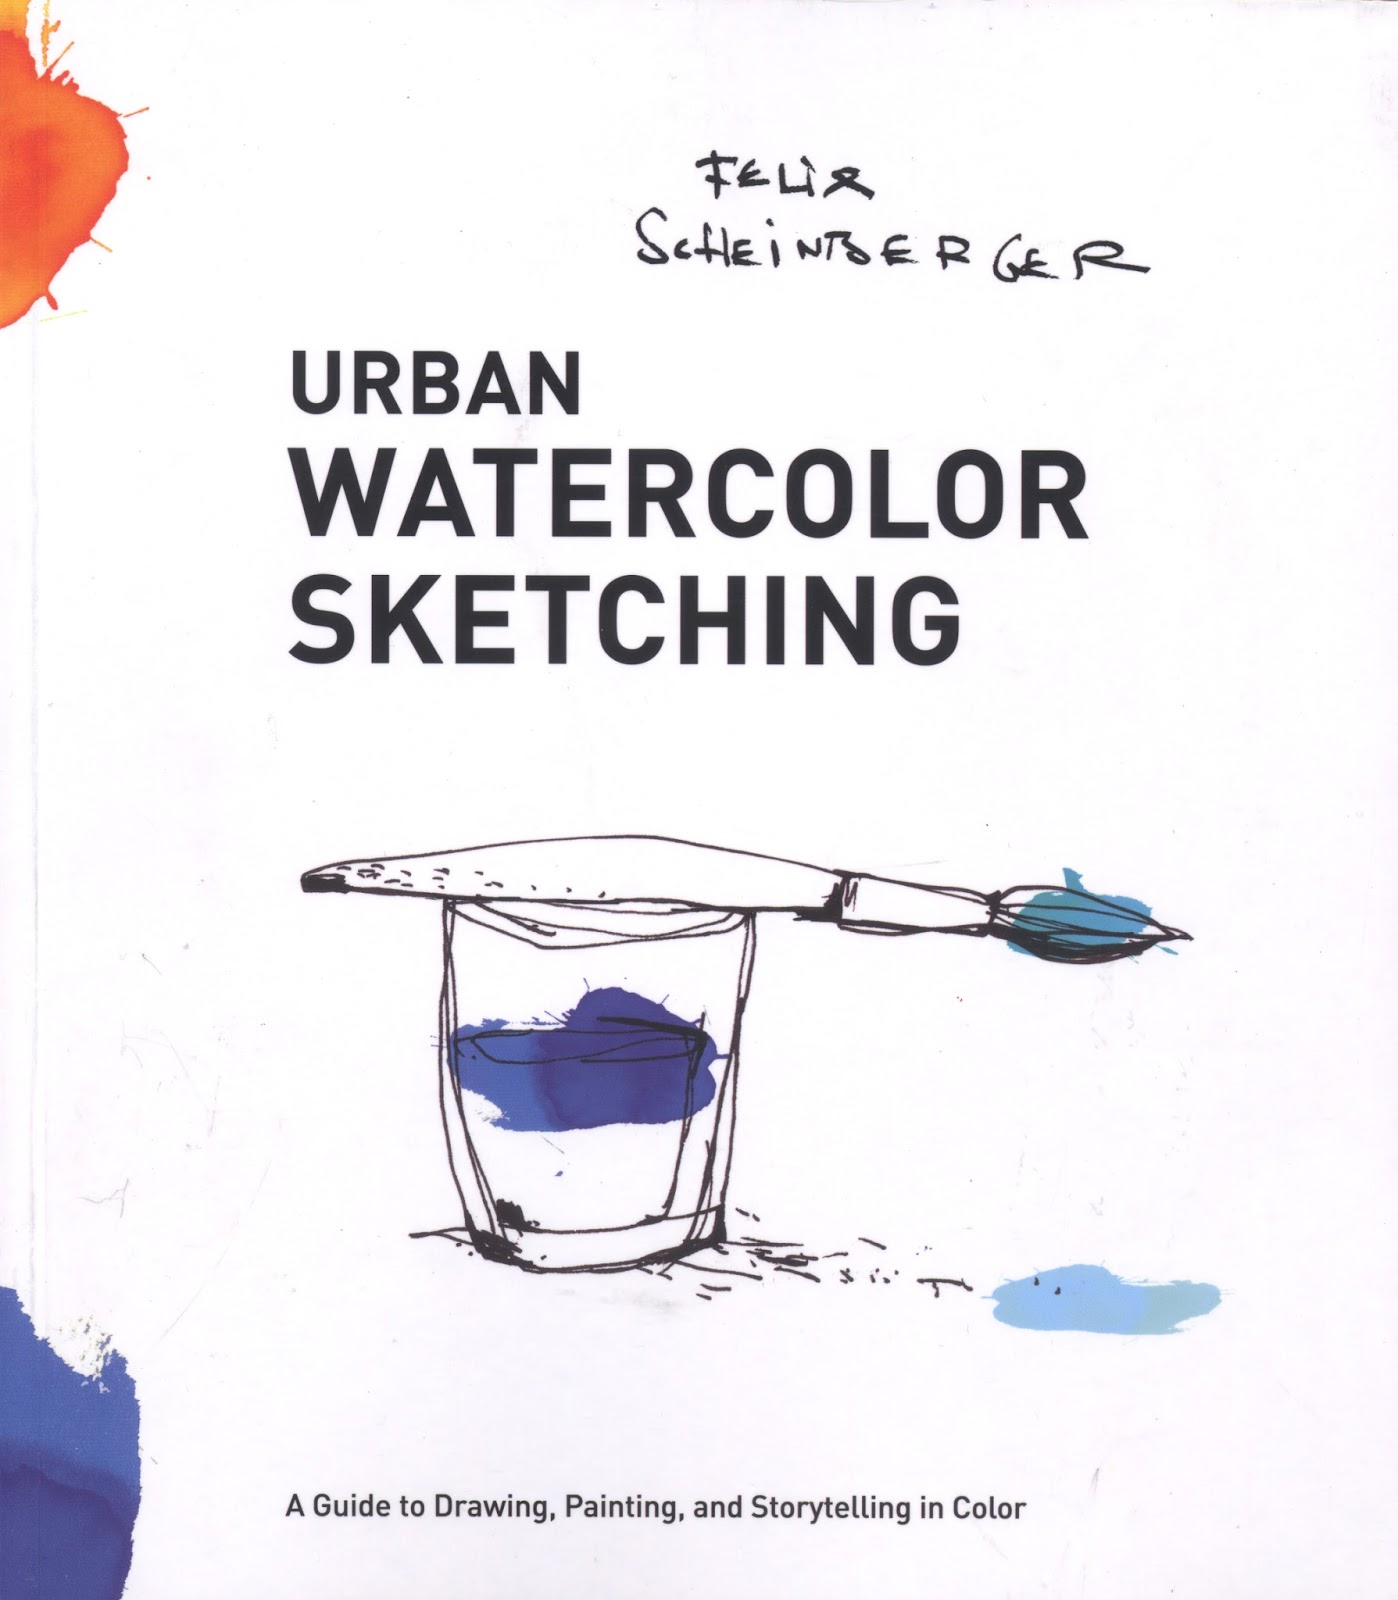 Watercolor books for beginners - Book Review Urban Watercolor Sketching By Felix Scheinberger